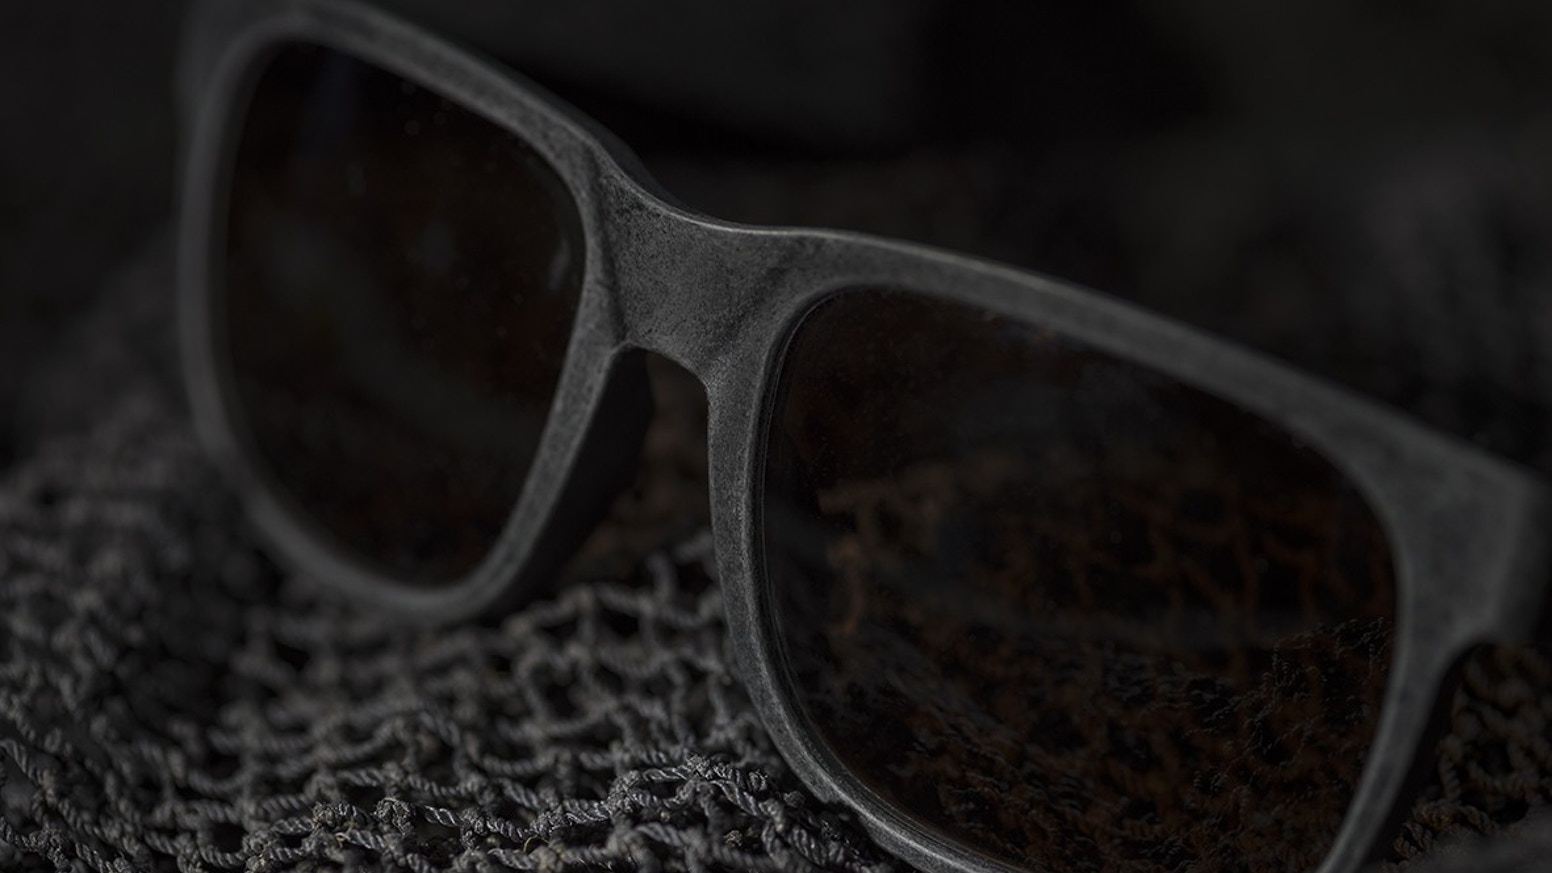 0b5a7a5433c Preventing discarded fishing nets from entering the ocean through the  creation of premium eyewear.